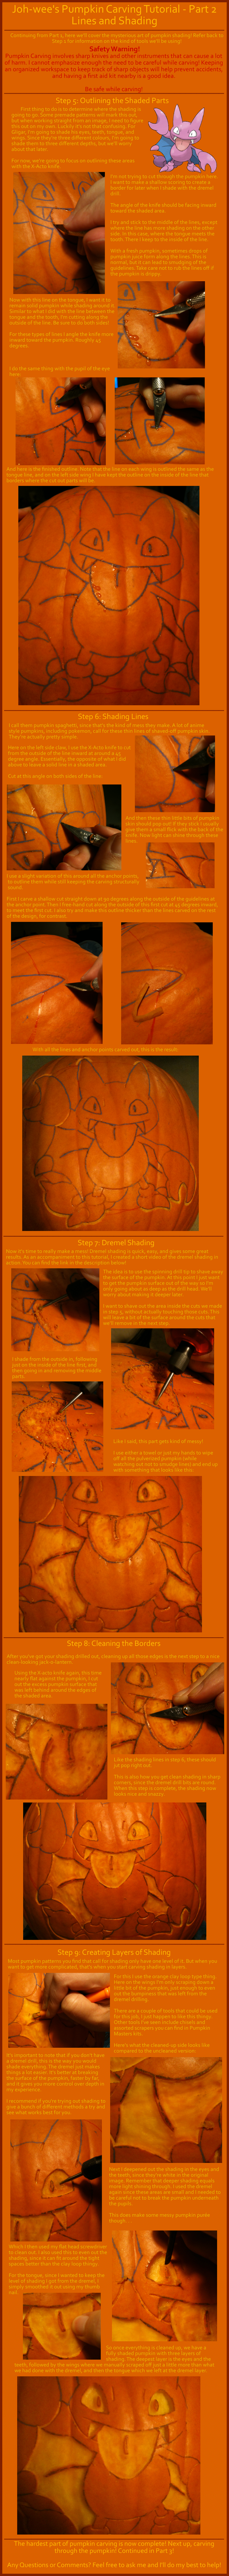 Pumpkin Carving Tutorial - Part 2 by johwee